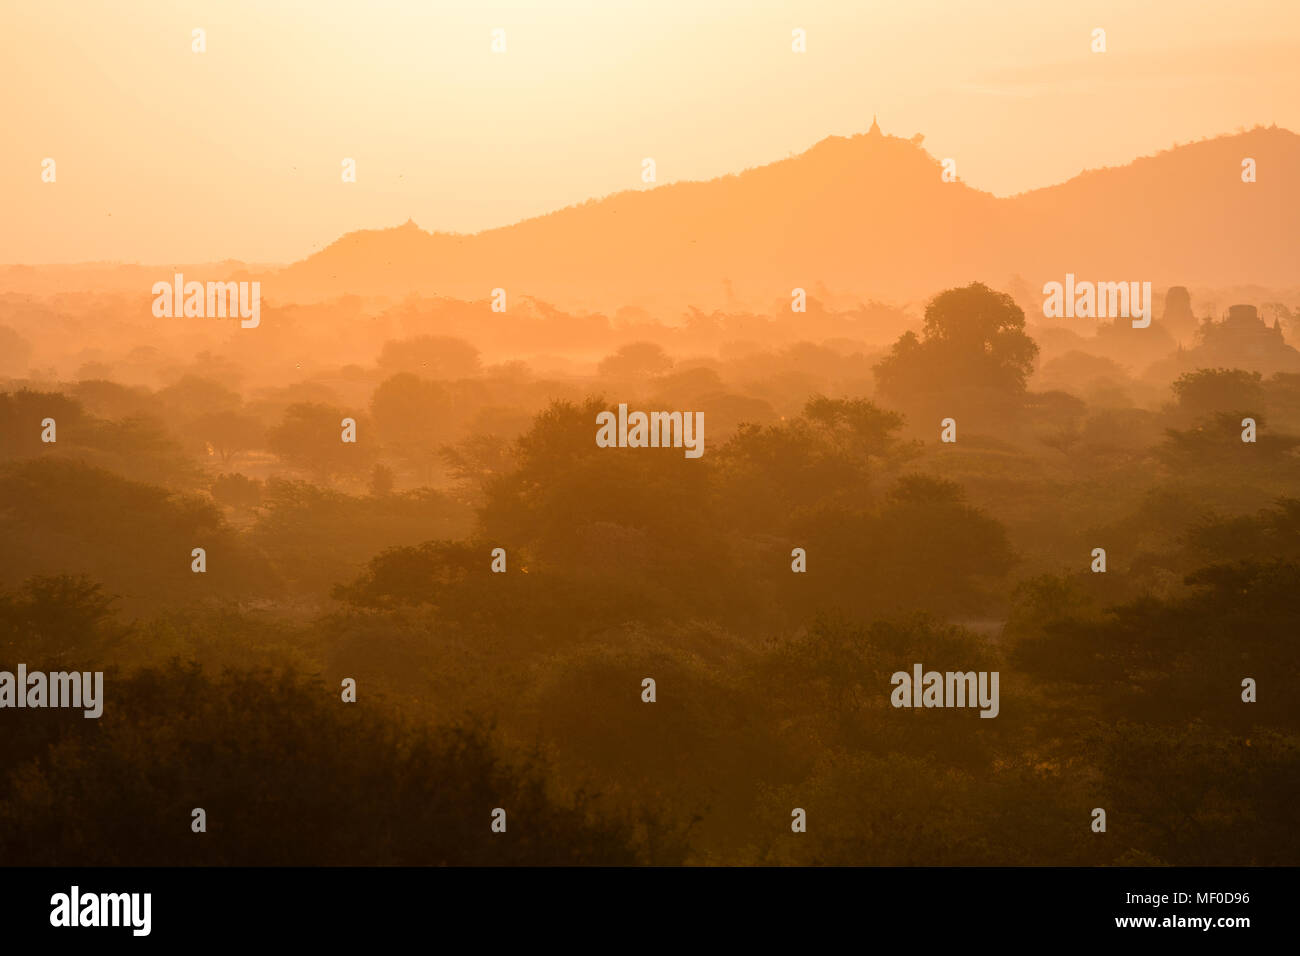 Scenic Sunrise over plain of Bagan on a misty morning, Myanmar Stock Photo